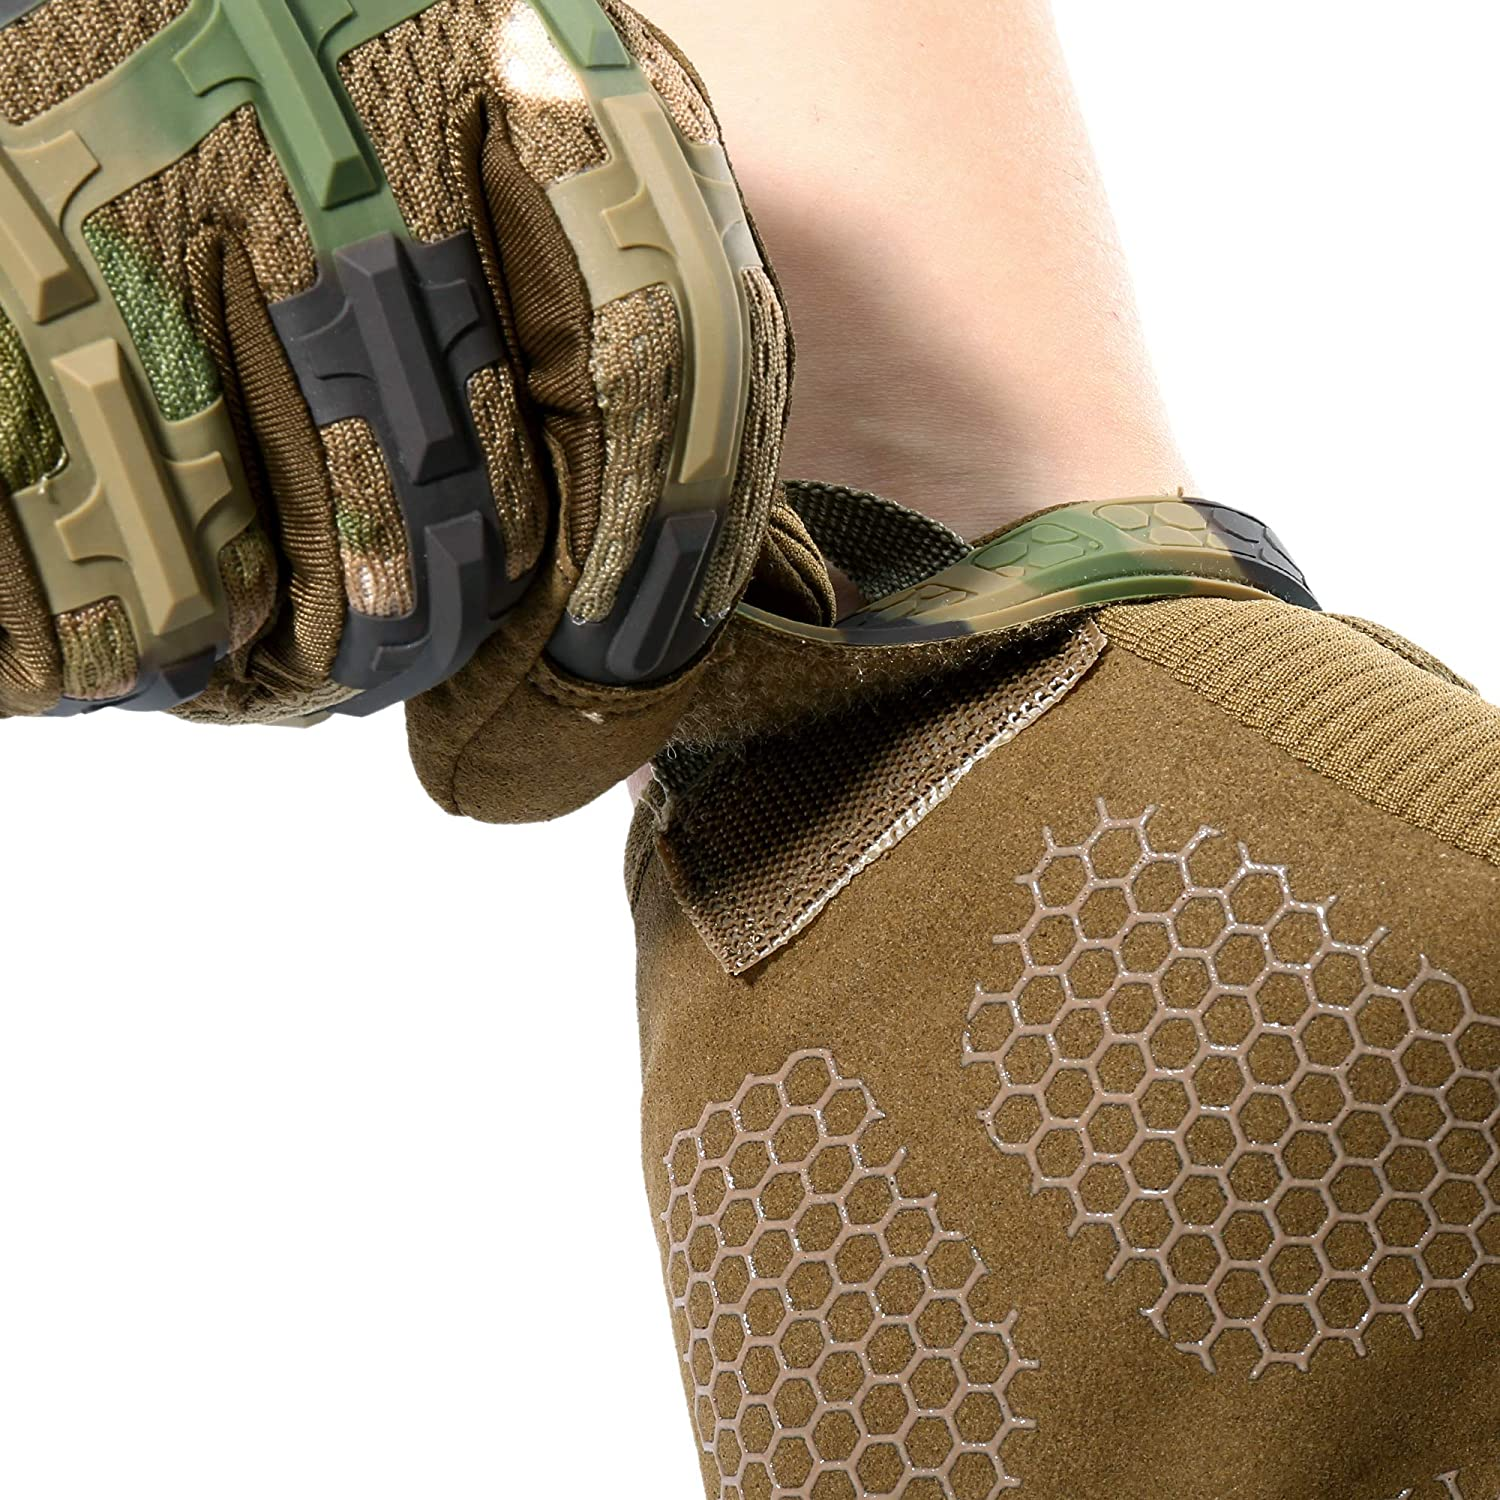 YOSUNPING Tactical Rubber Knuckle Full Finger Gloves Protection for Airsoft Paintball Riding Motorcycle Work